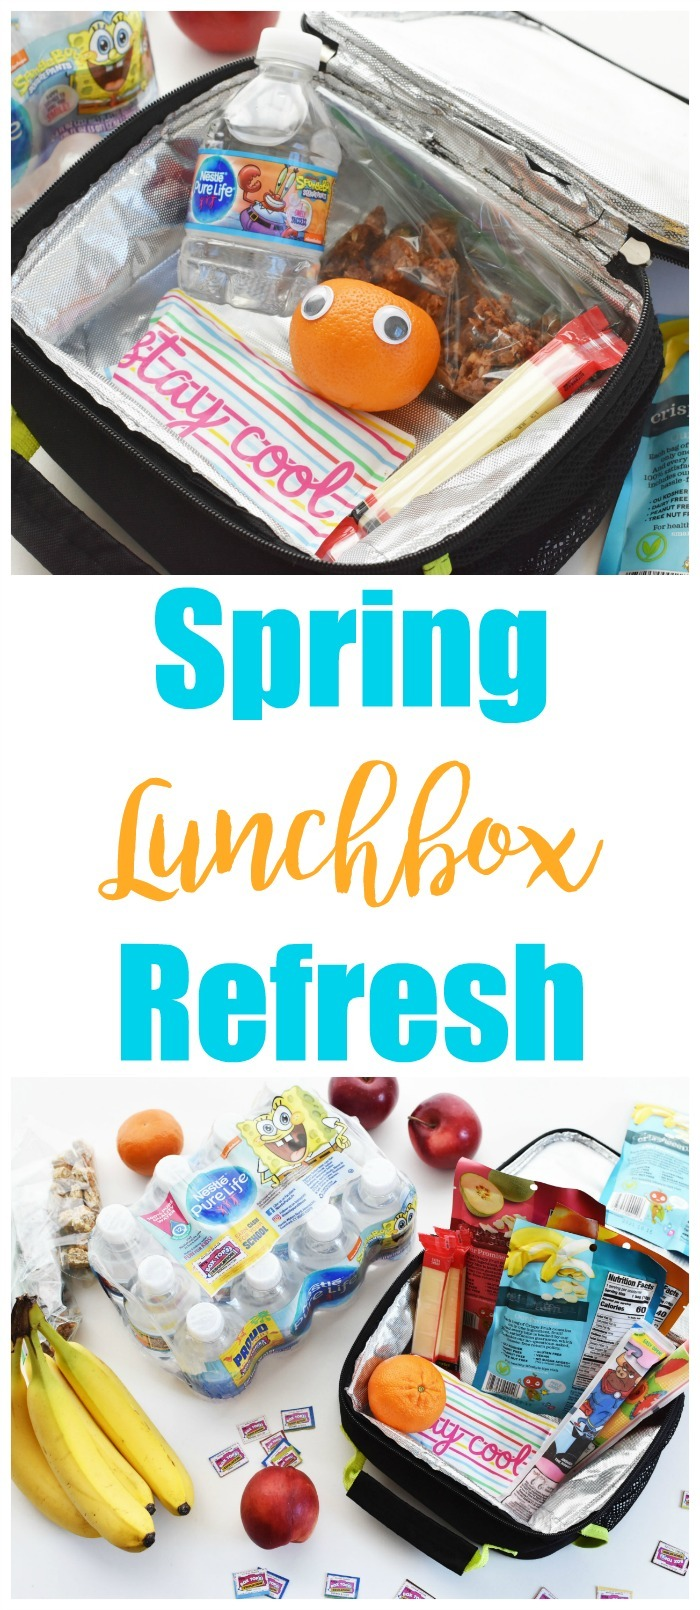 Spring Lunchbox Refresh Ideas for Kids